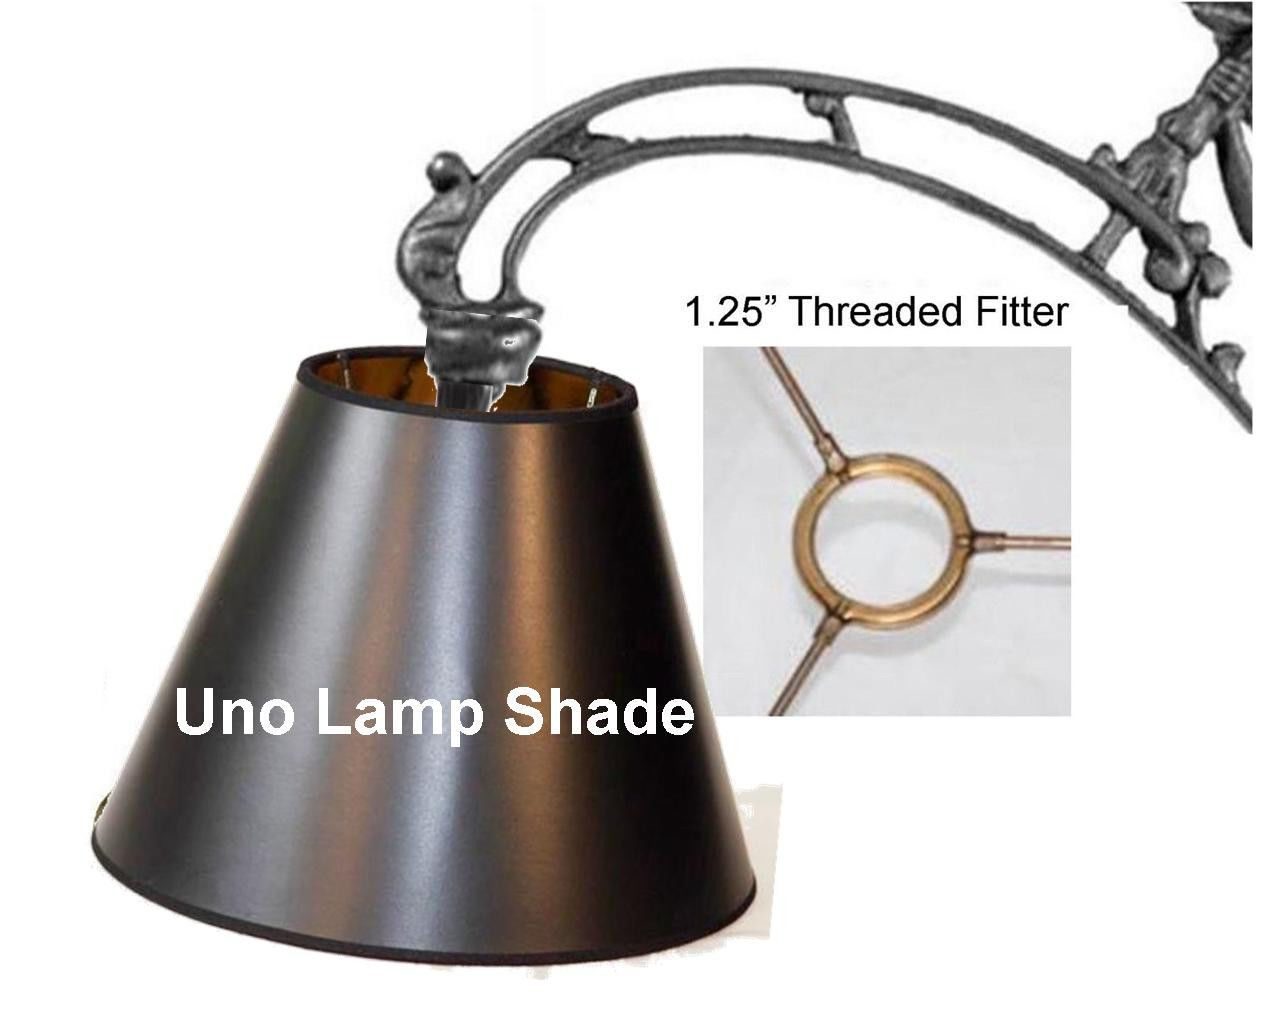 P On Er Black Lampshade Fits Floor Lamps Bridge Arm Gooseneck And Others Uno Lamp Shade Has 1 25 Wide Threaded